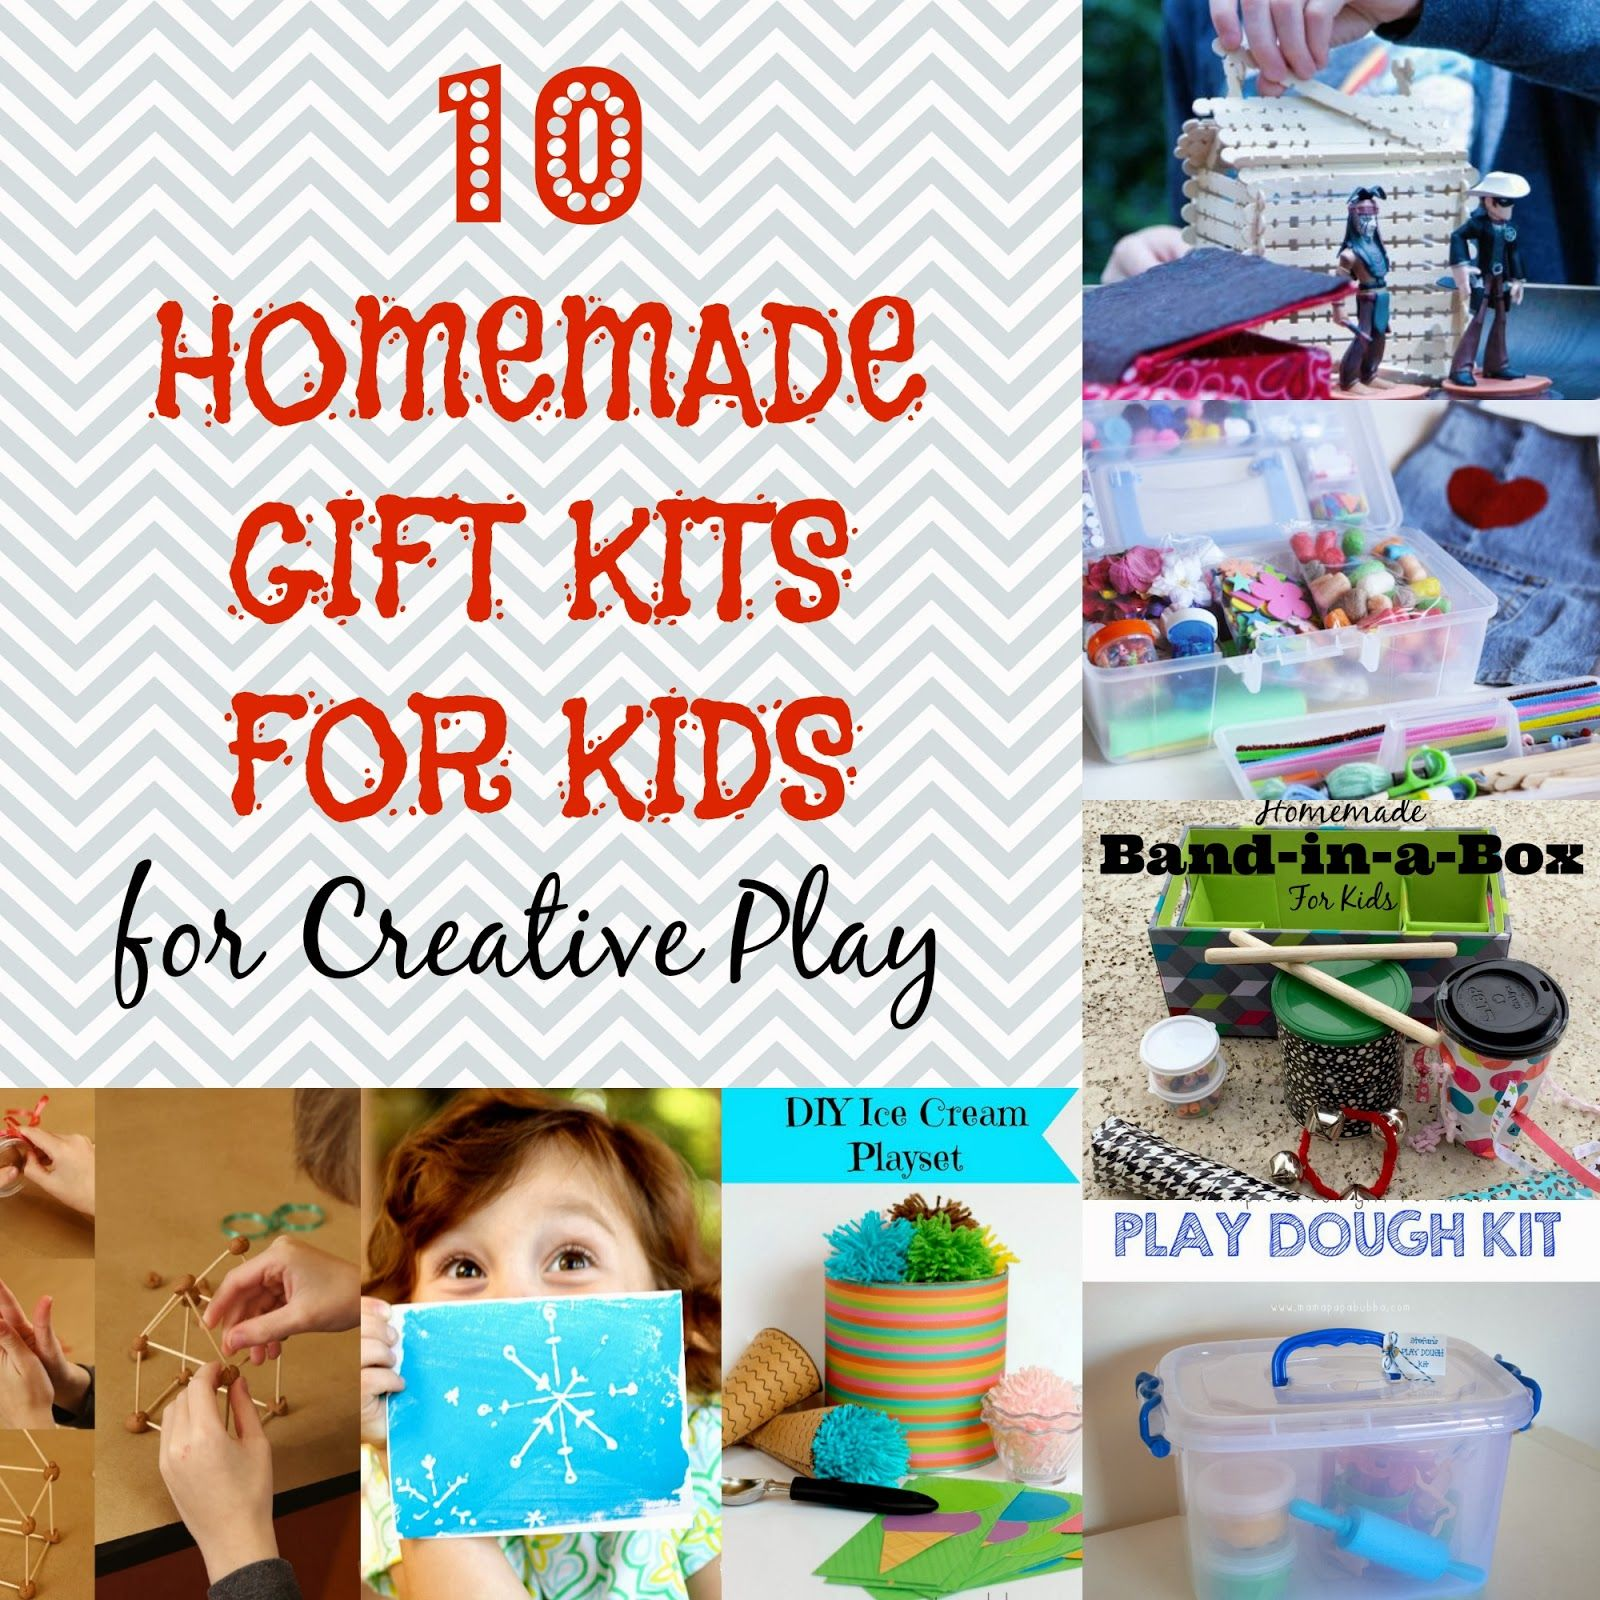 10 Unique Homemade Gift Kits for Kids for Creative Play - The Eyes ...